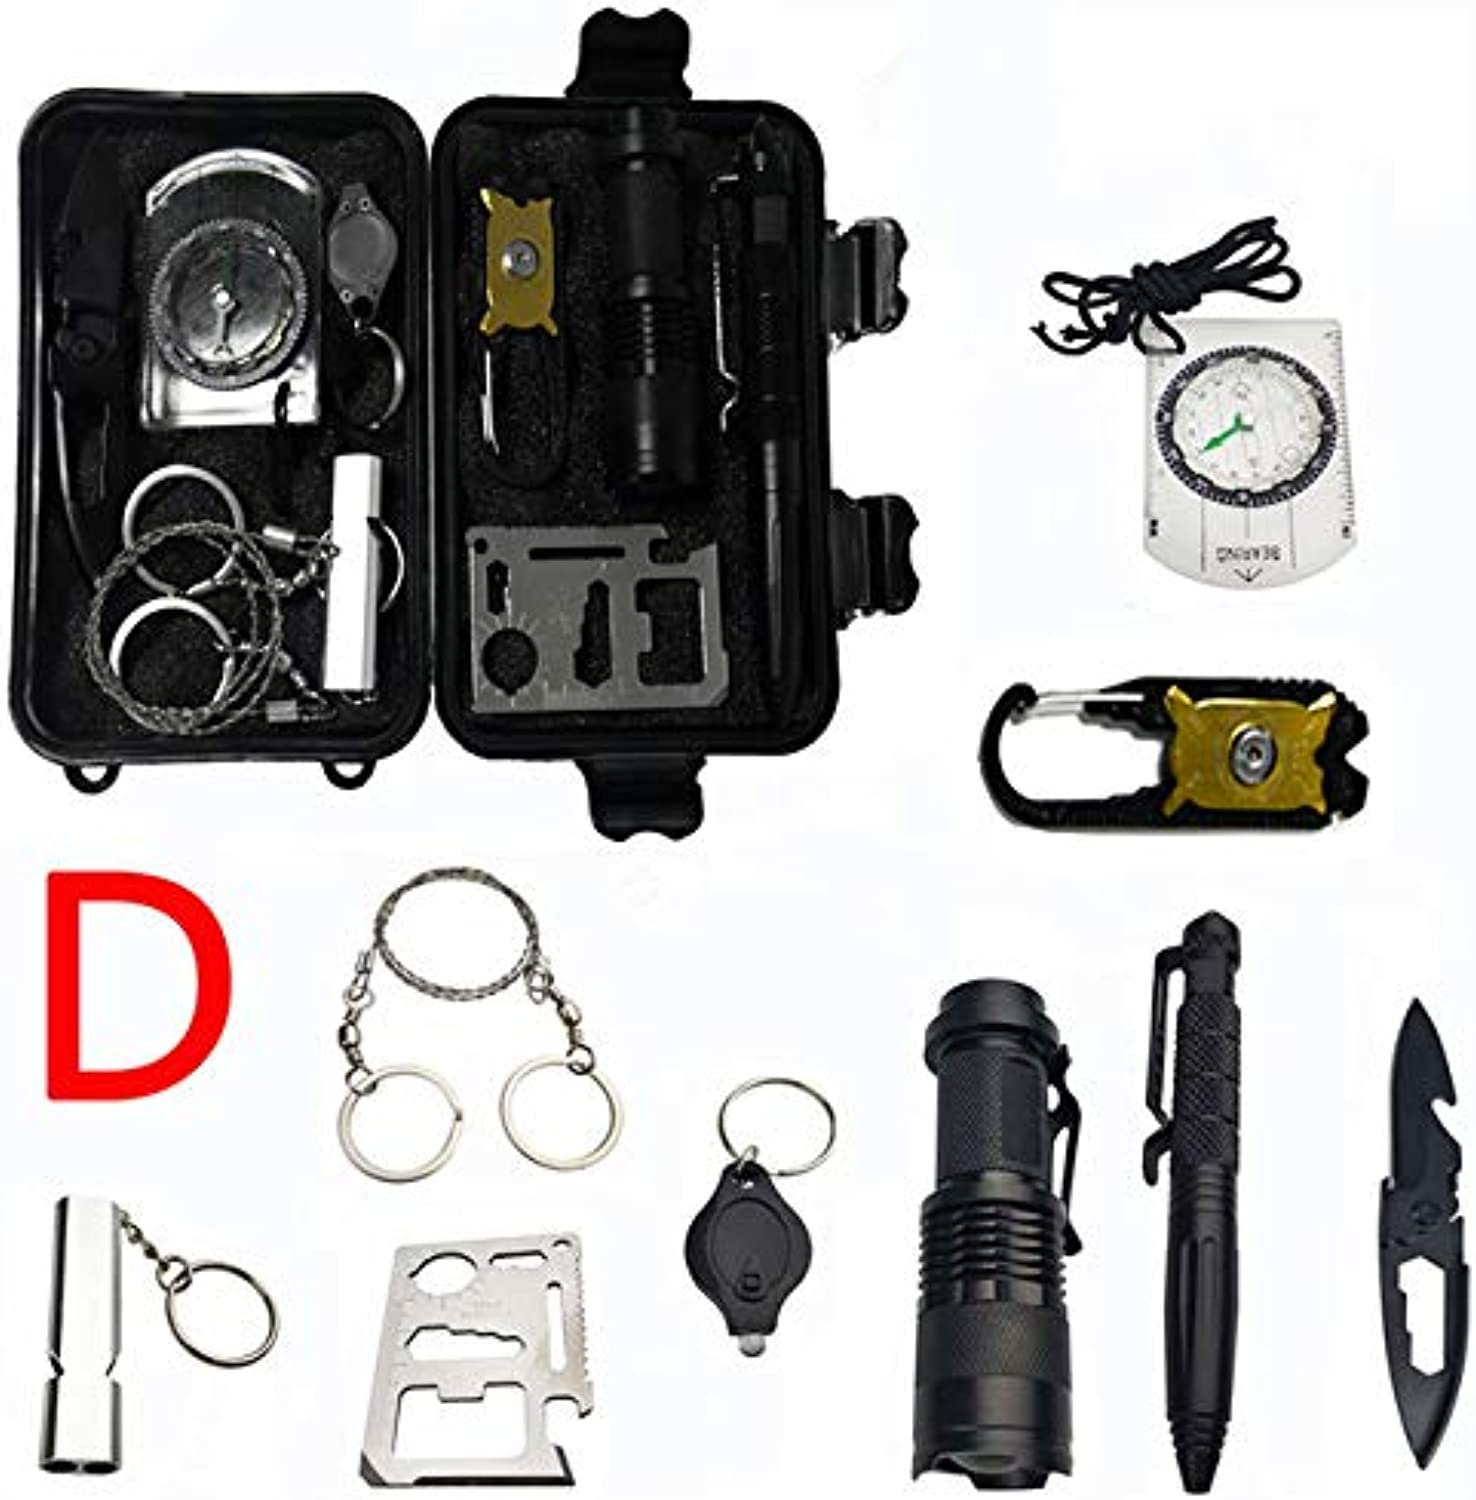 10 in 1 Survival kit Set Outdoor EDC Camping Equipment Travel Multifunction First aid SOS Emergency Supplies Tactical+Slingshot   D